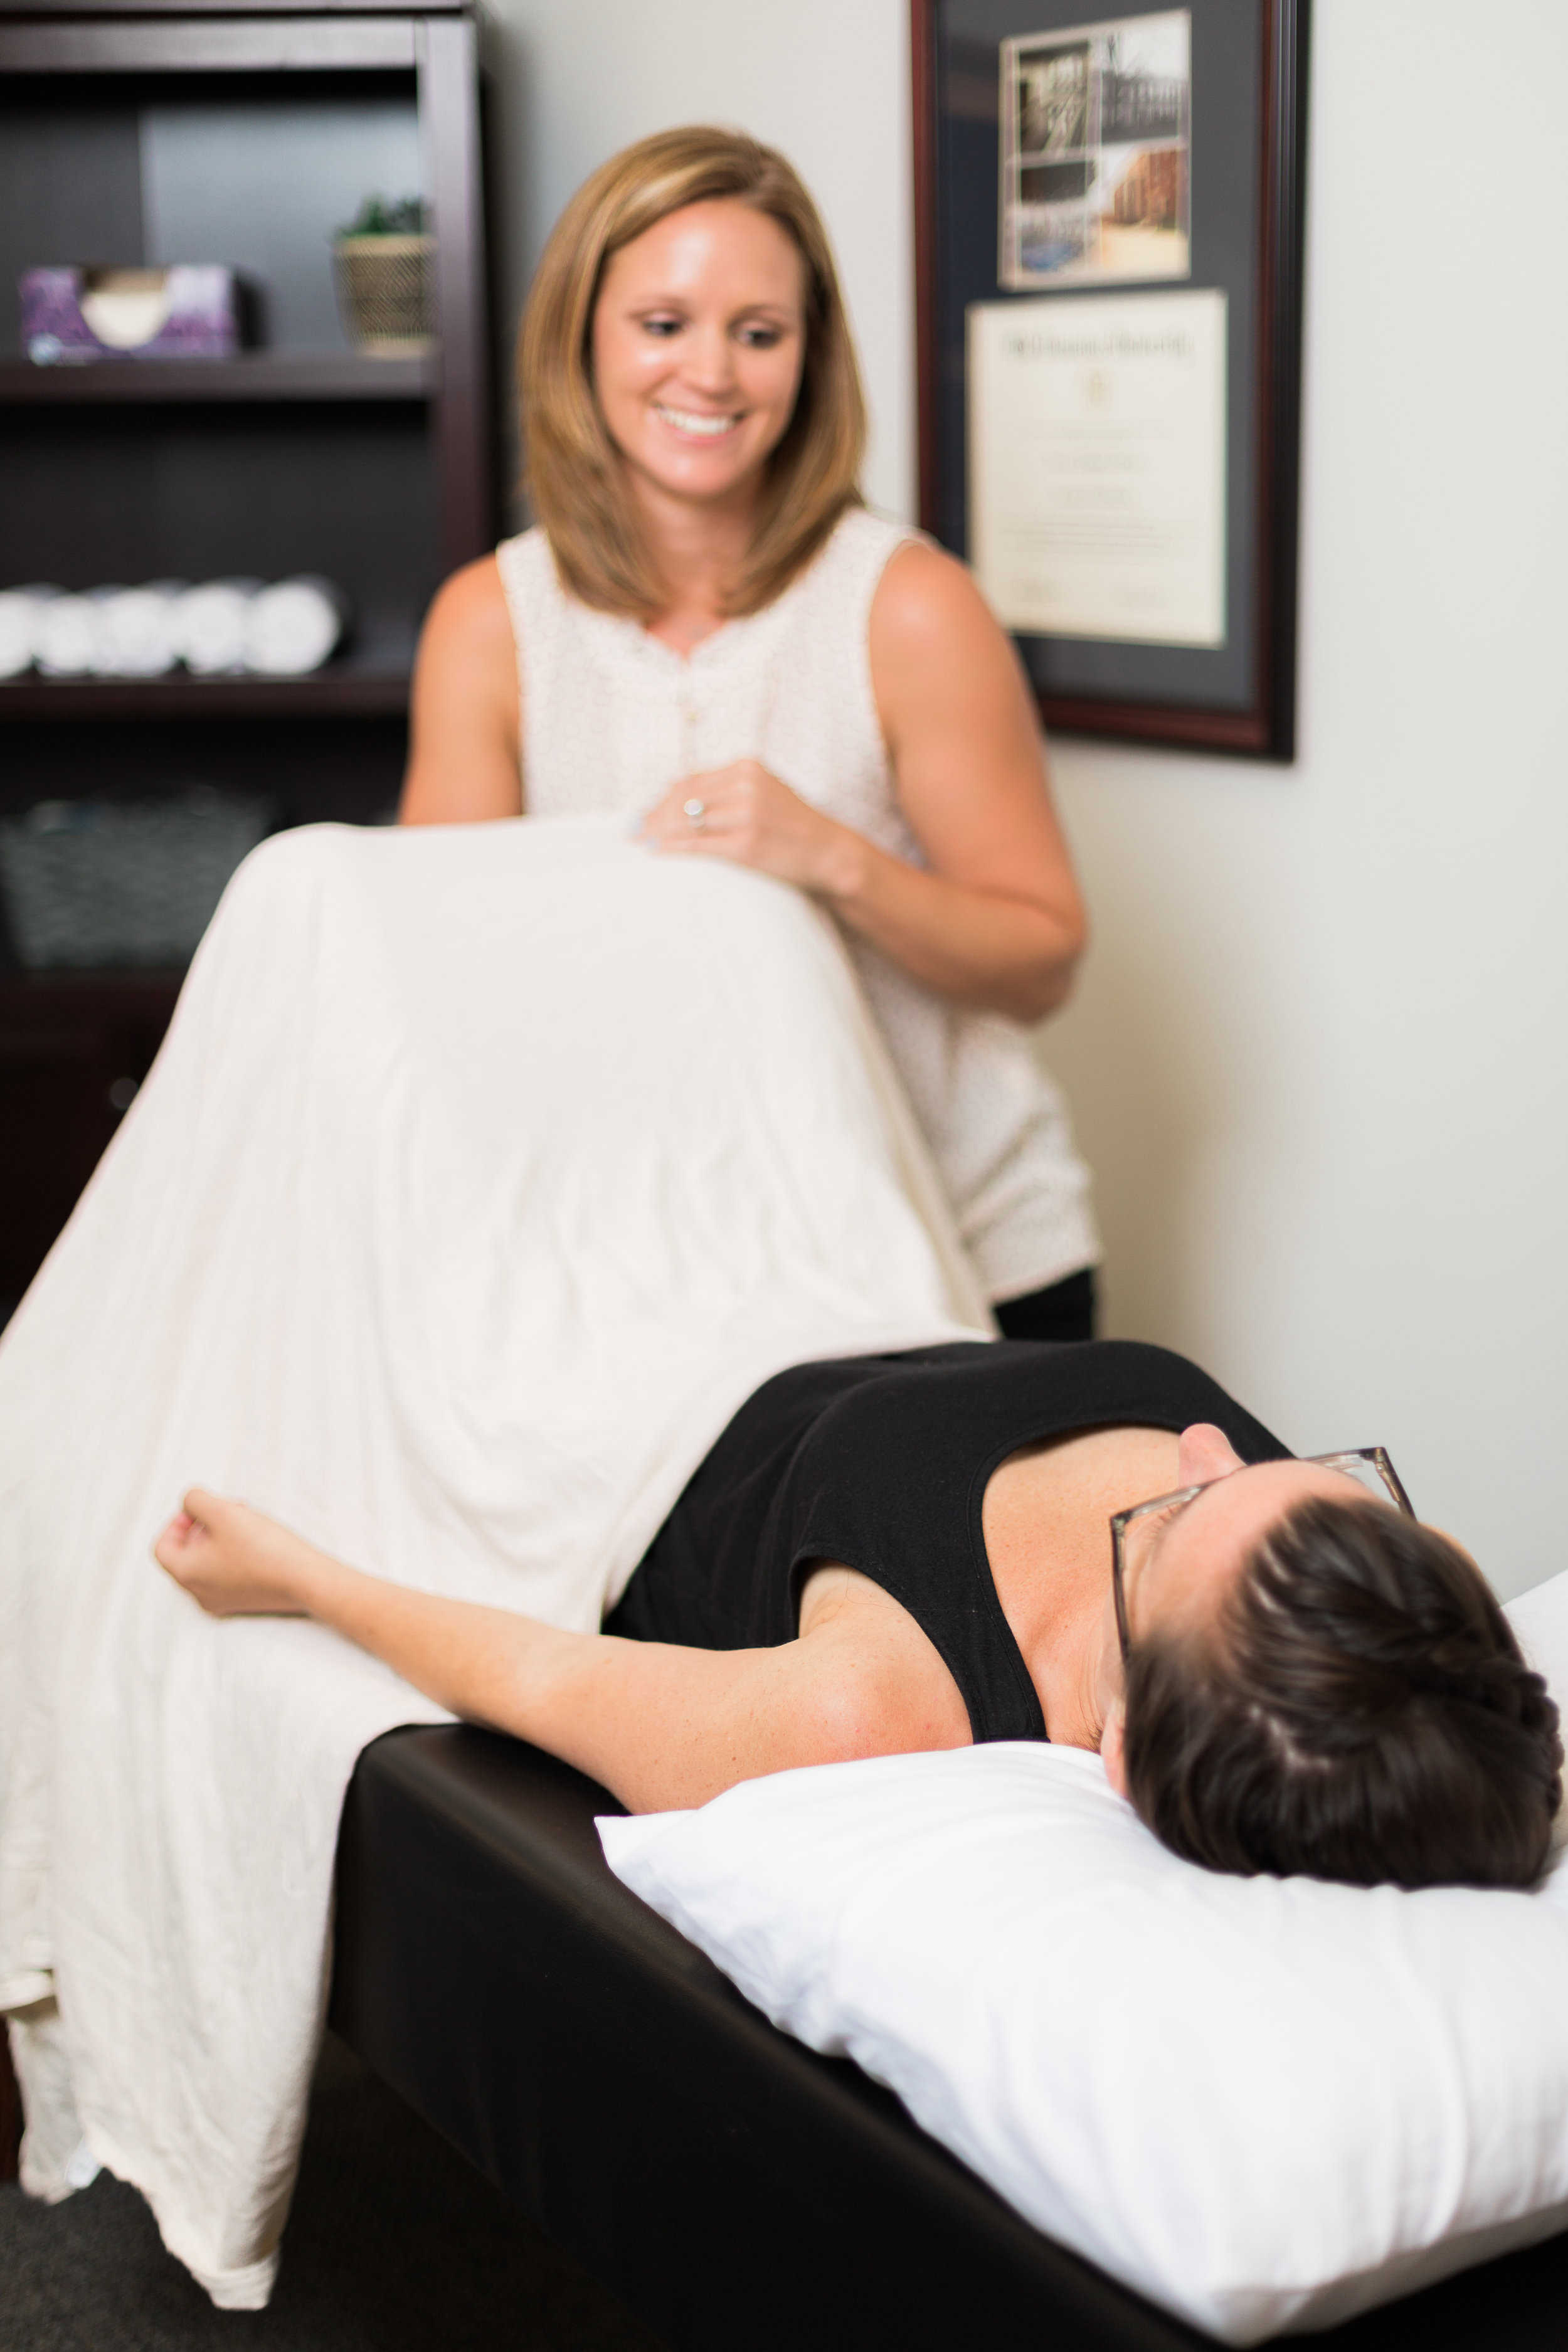 Women's Health Treatment in Wake Forest, NC at PhysioFit of North Carolina